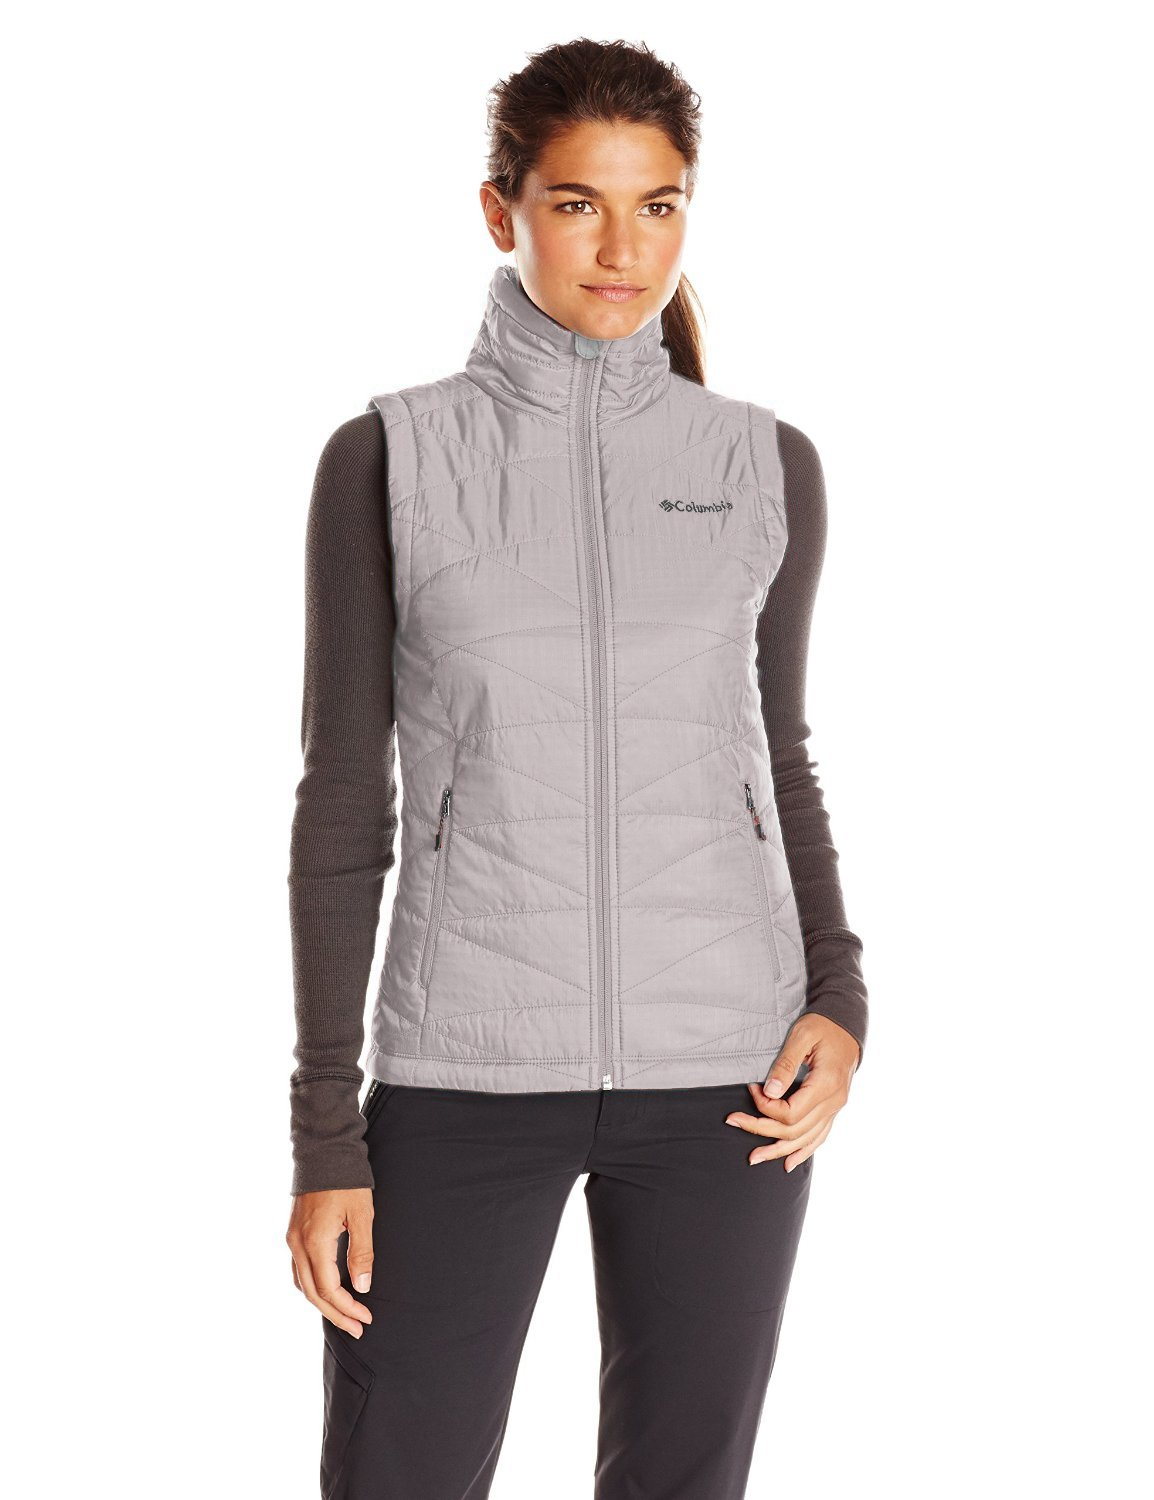 Columbia Womens' Mighty Light III Vest - Light Grey - Large by Columbia